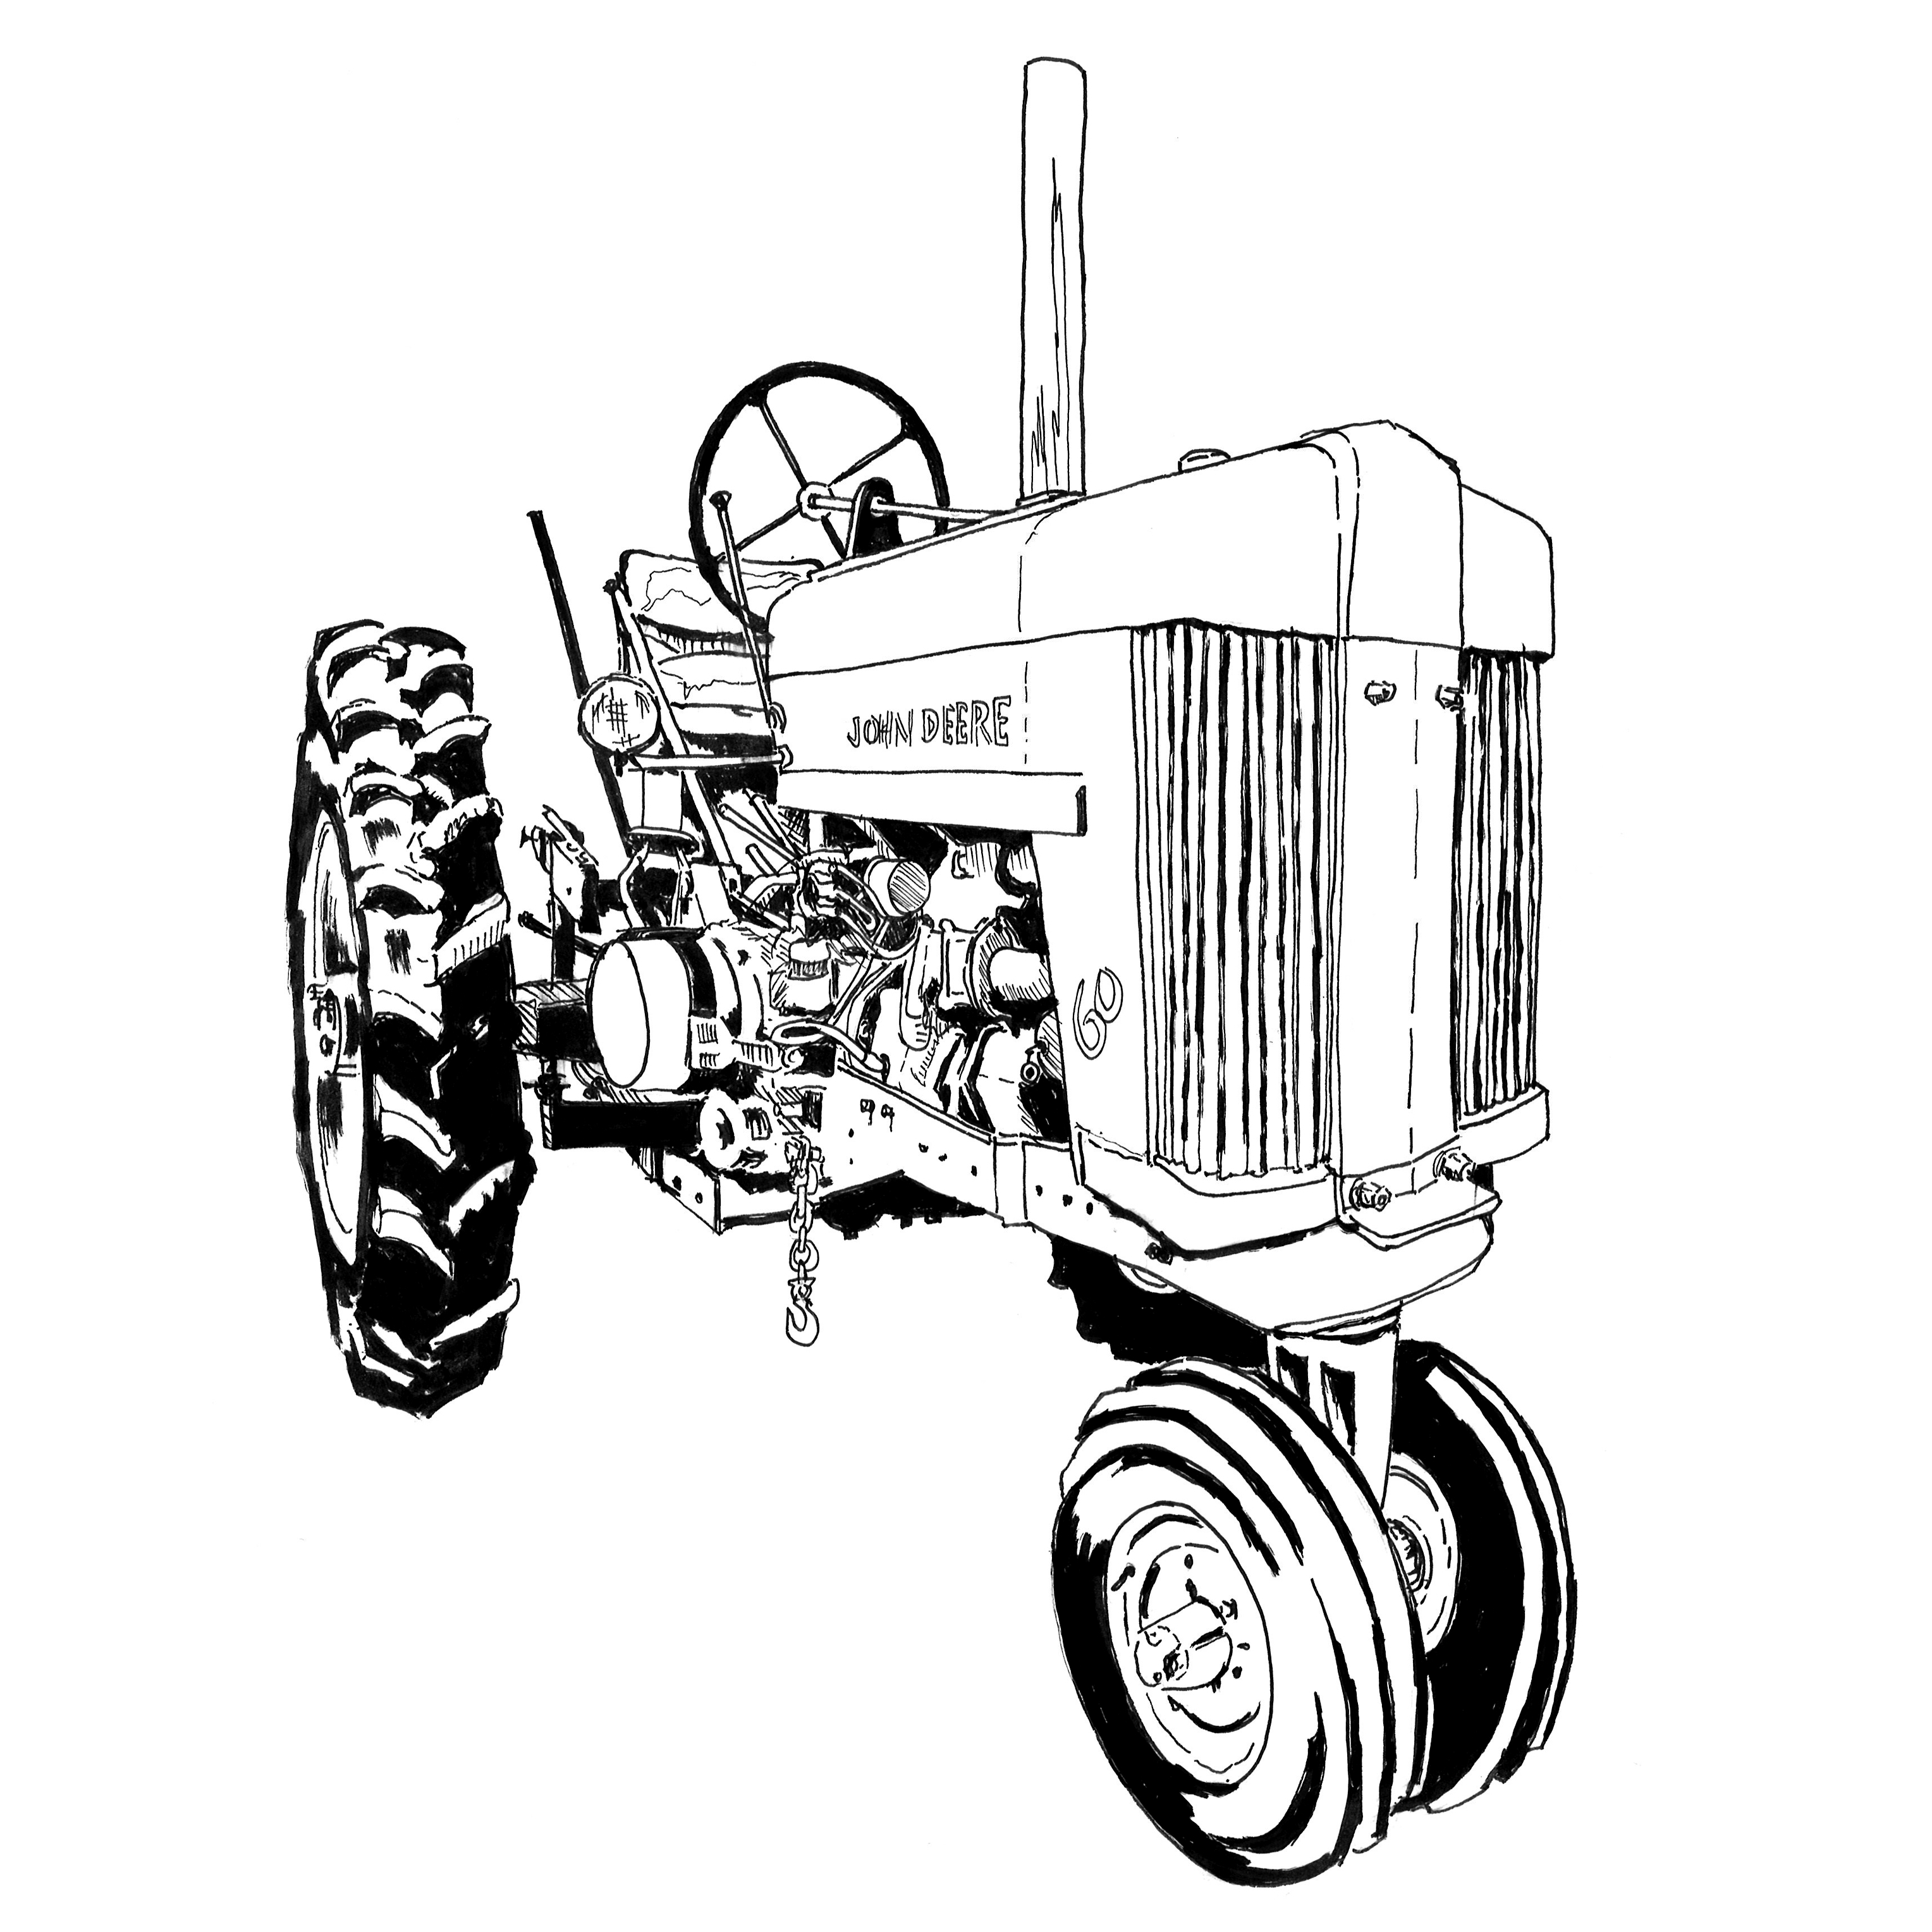 john deere tractors coloring pages free printable tractor coloring pages for kids deere tractors john pages coloring